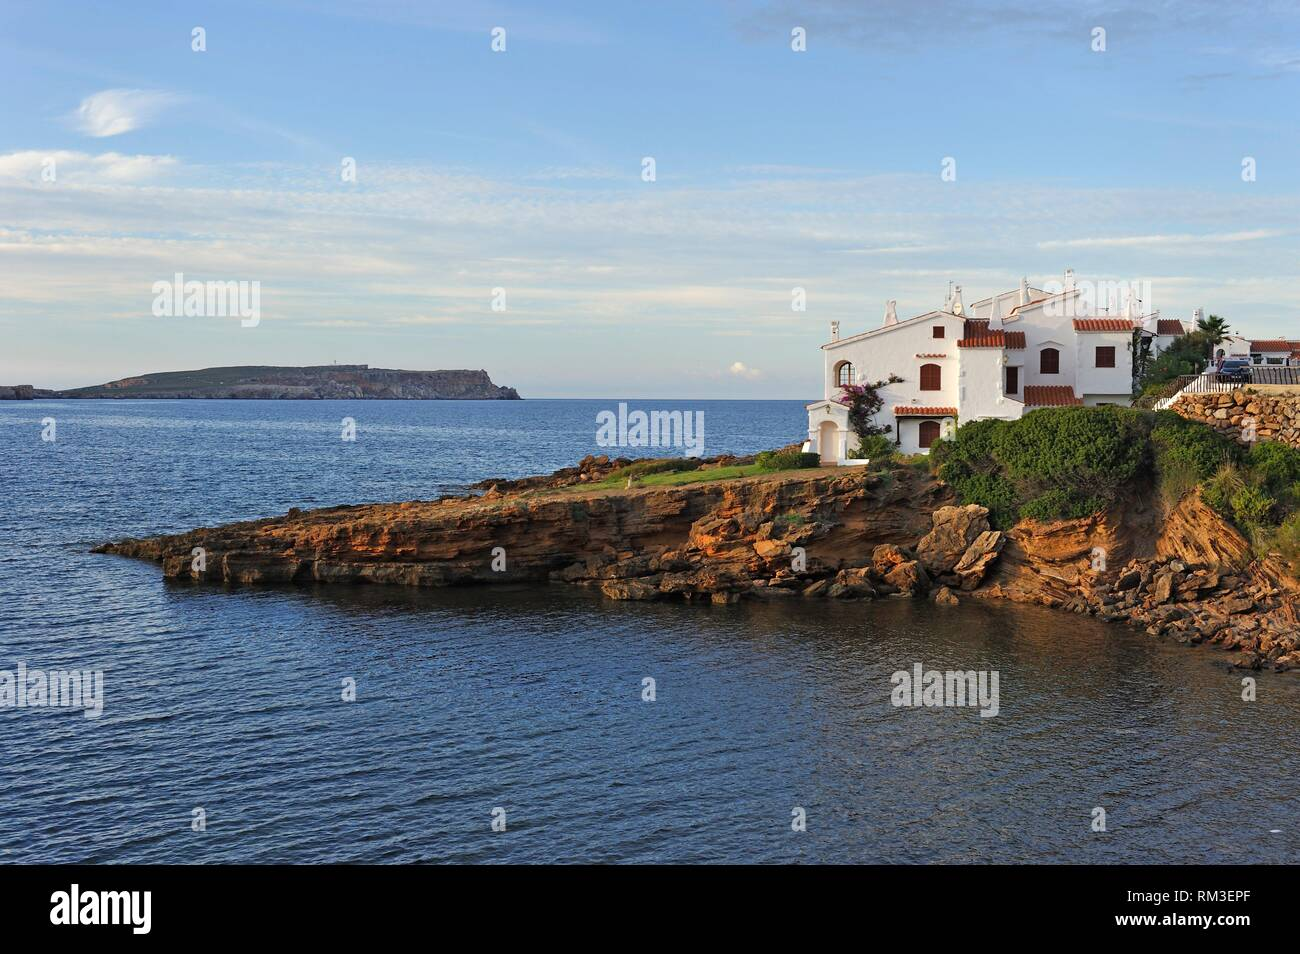 holiday villas at Platges de Fornells, seaside resort, Menorca, Balearic Islands, Spain, Europe. - Stock Image